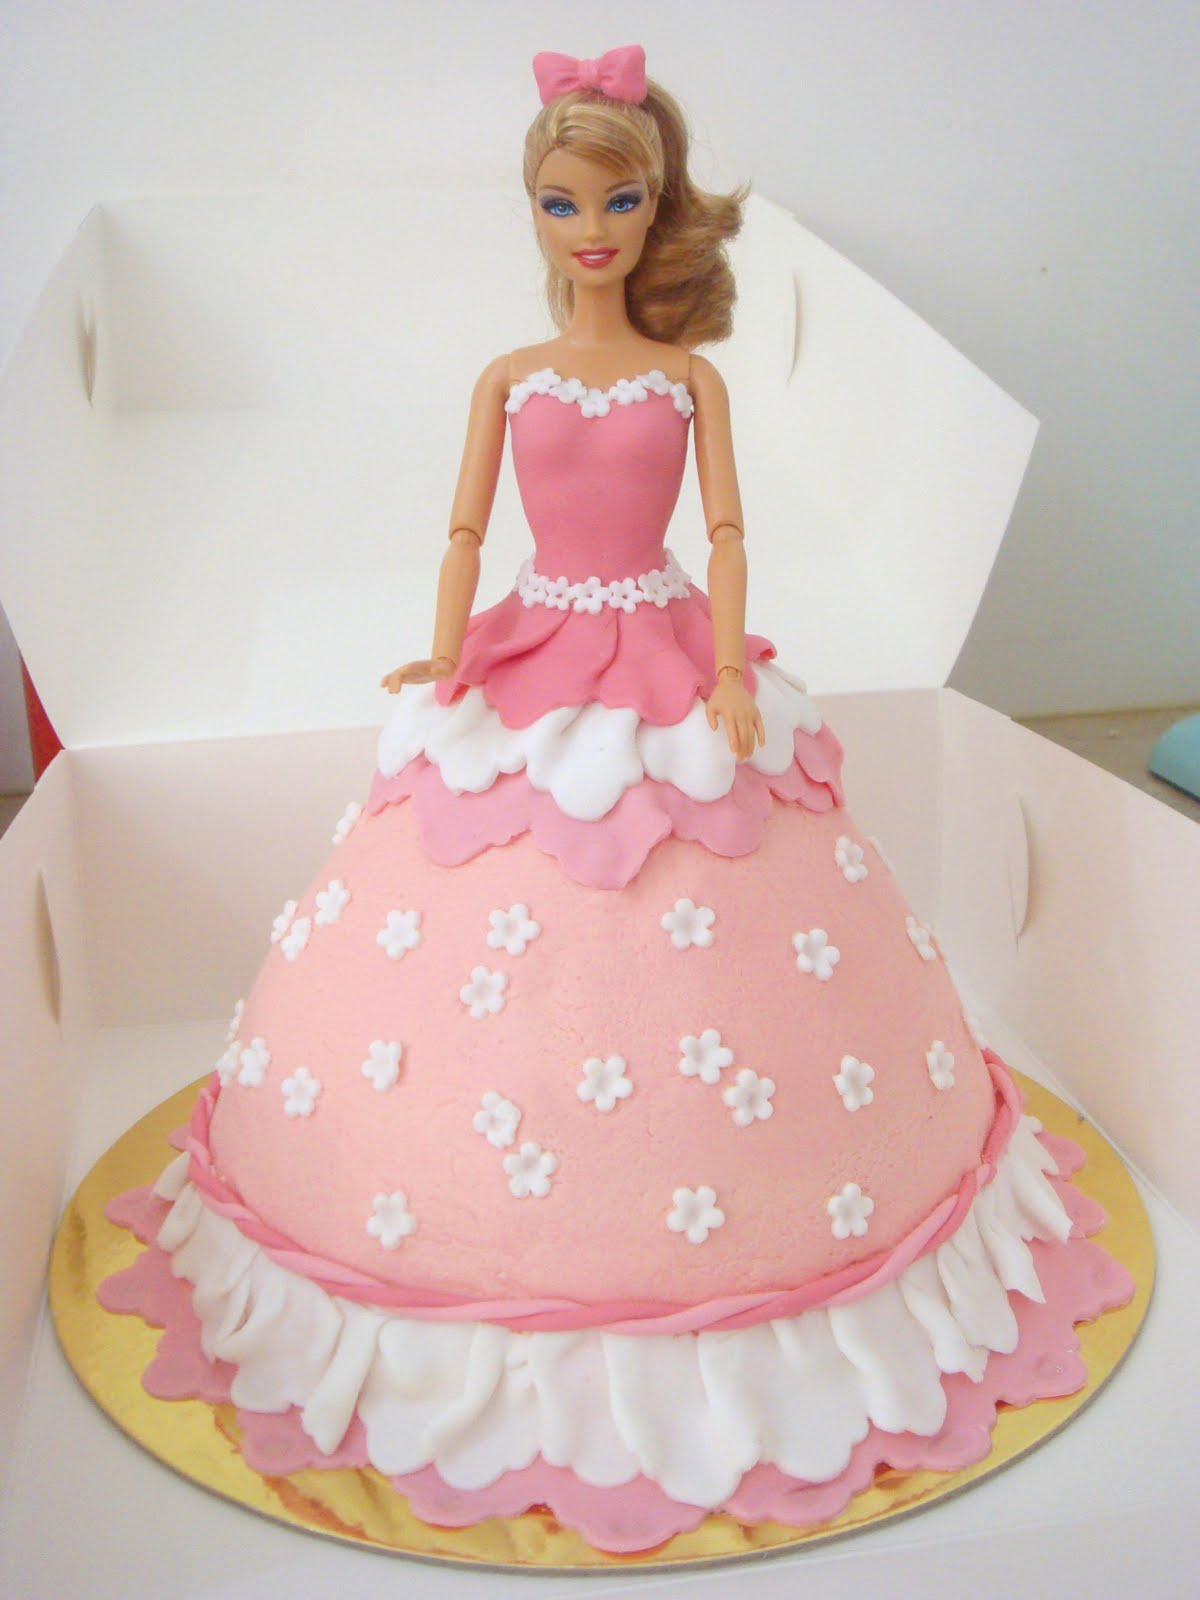 Cake Images Barbie : butter hearts sugar: Barbie Doll Cake